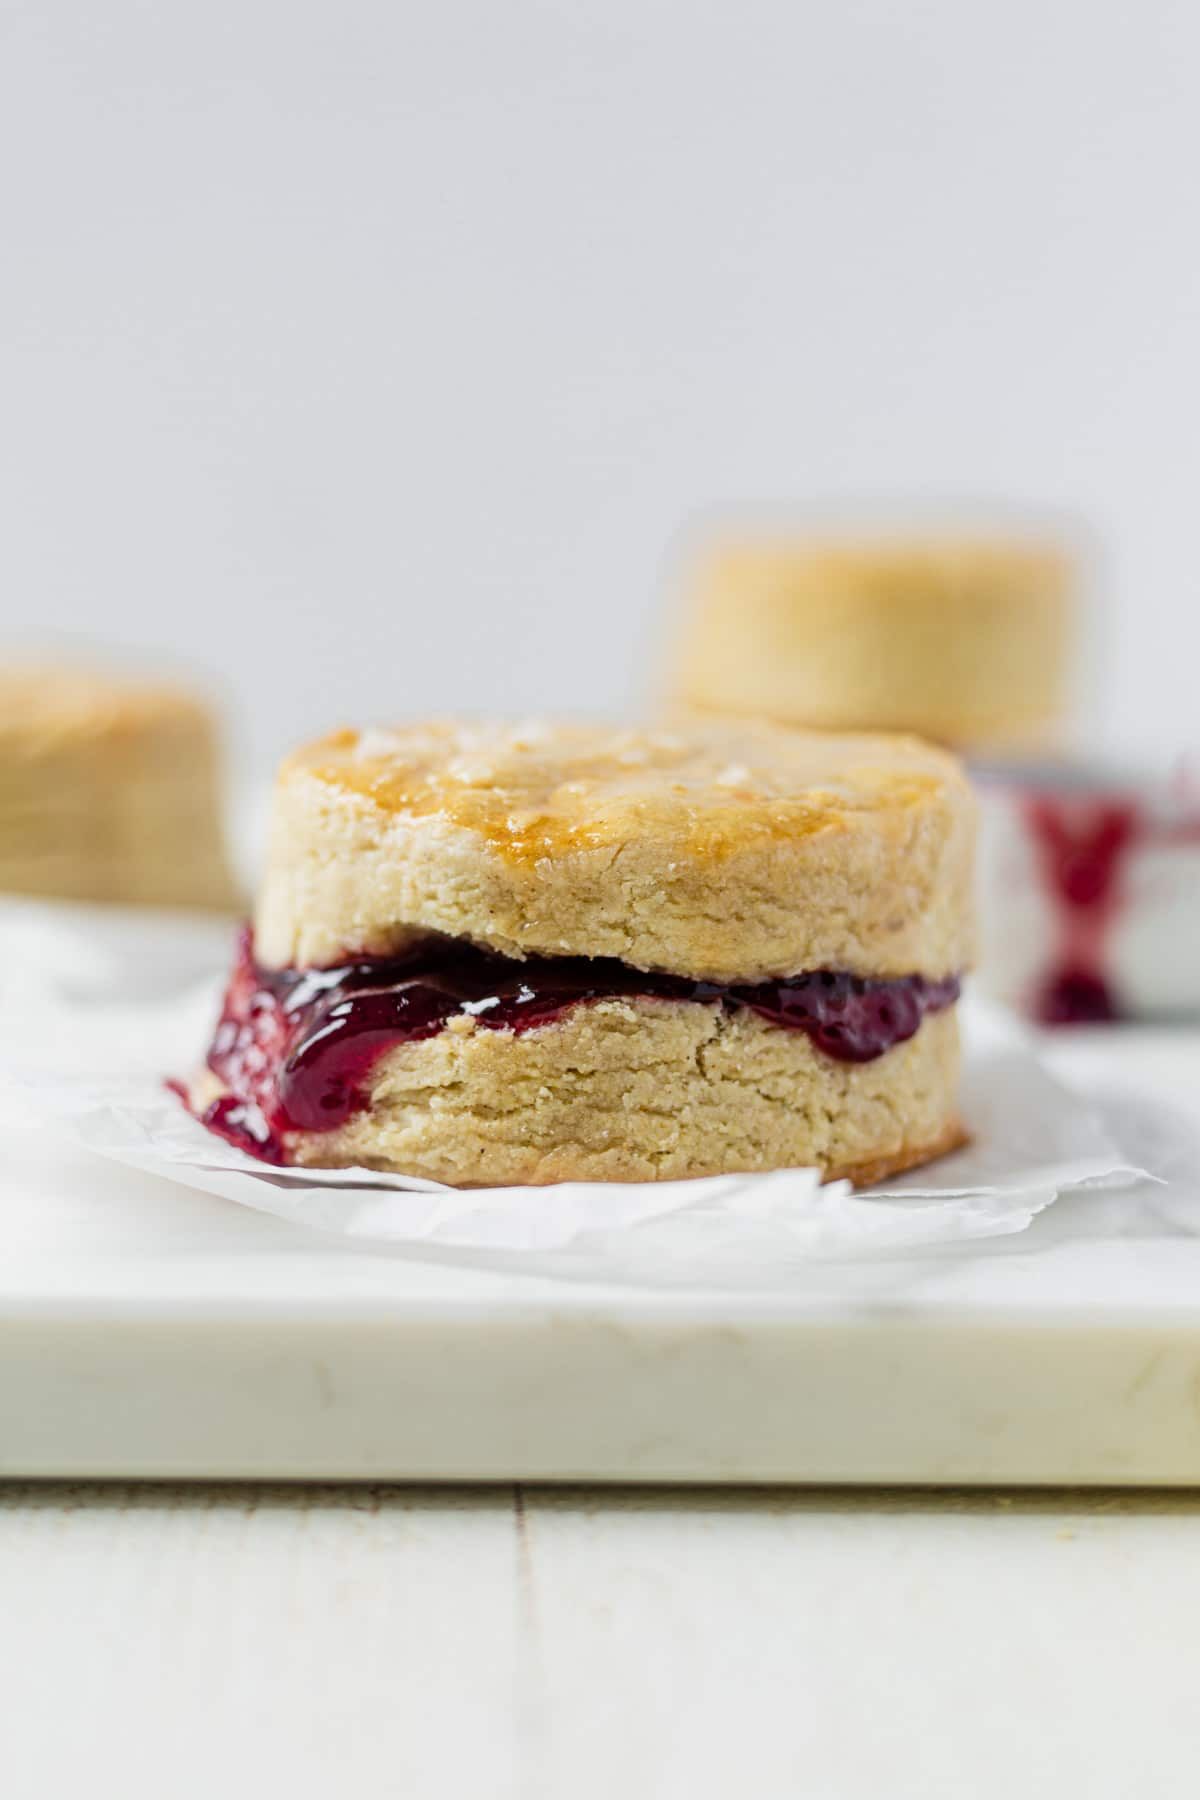 a flaky golden brown vegan biscuits filled with strawberry jam that's oozing out of the side